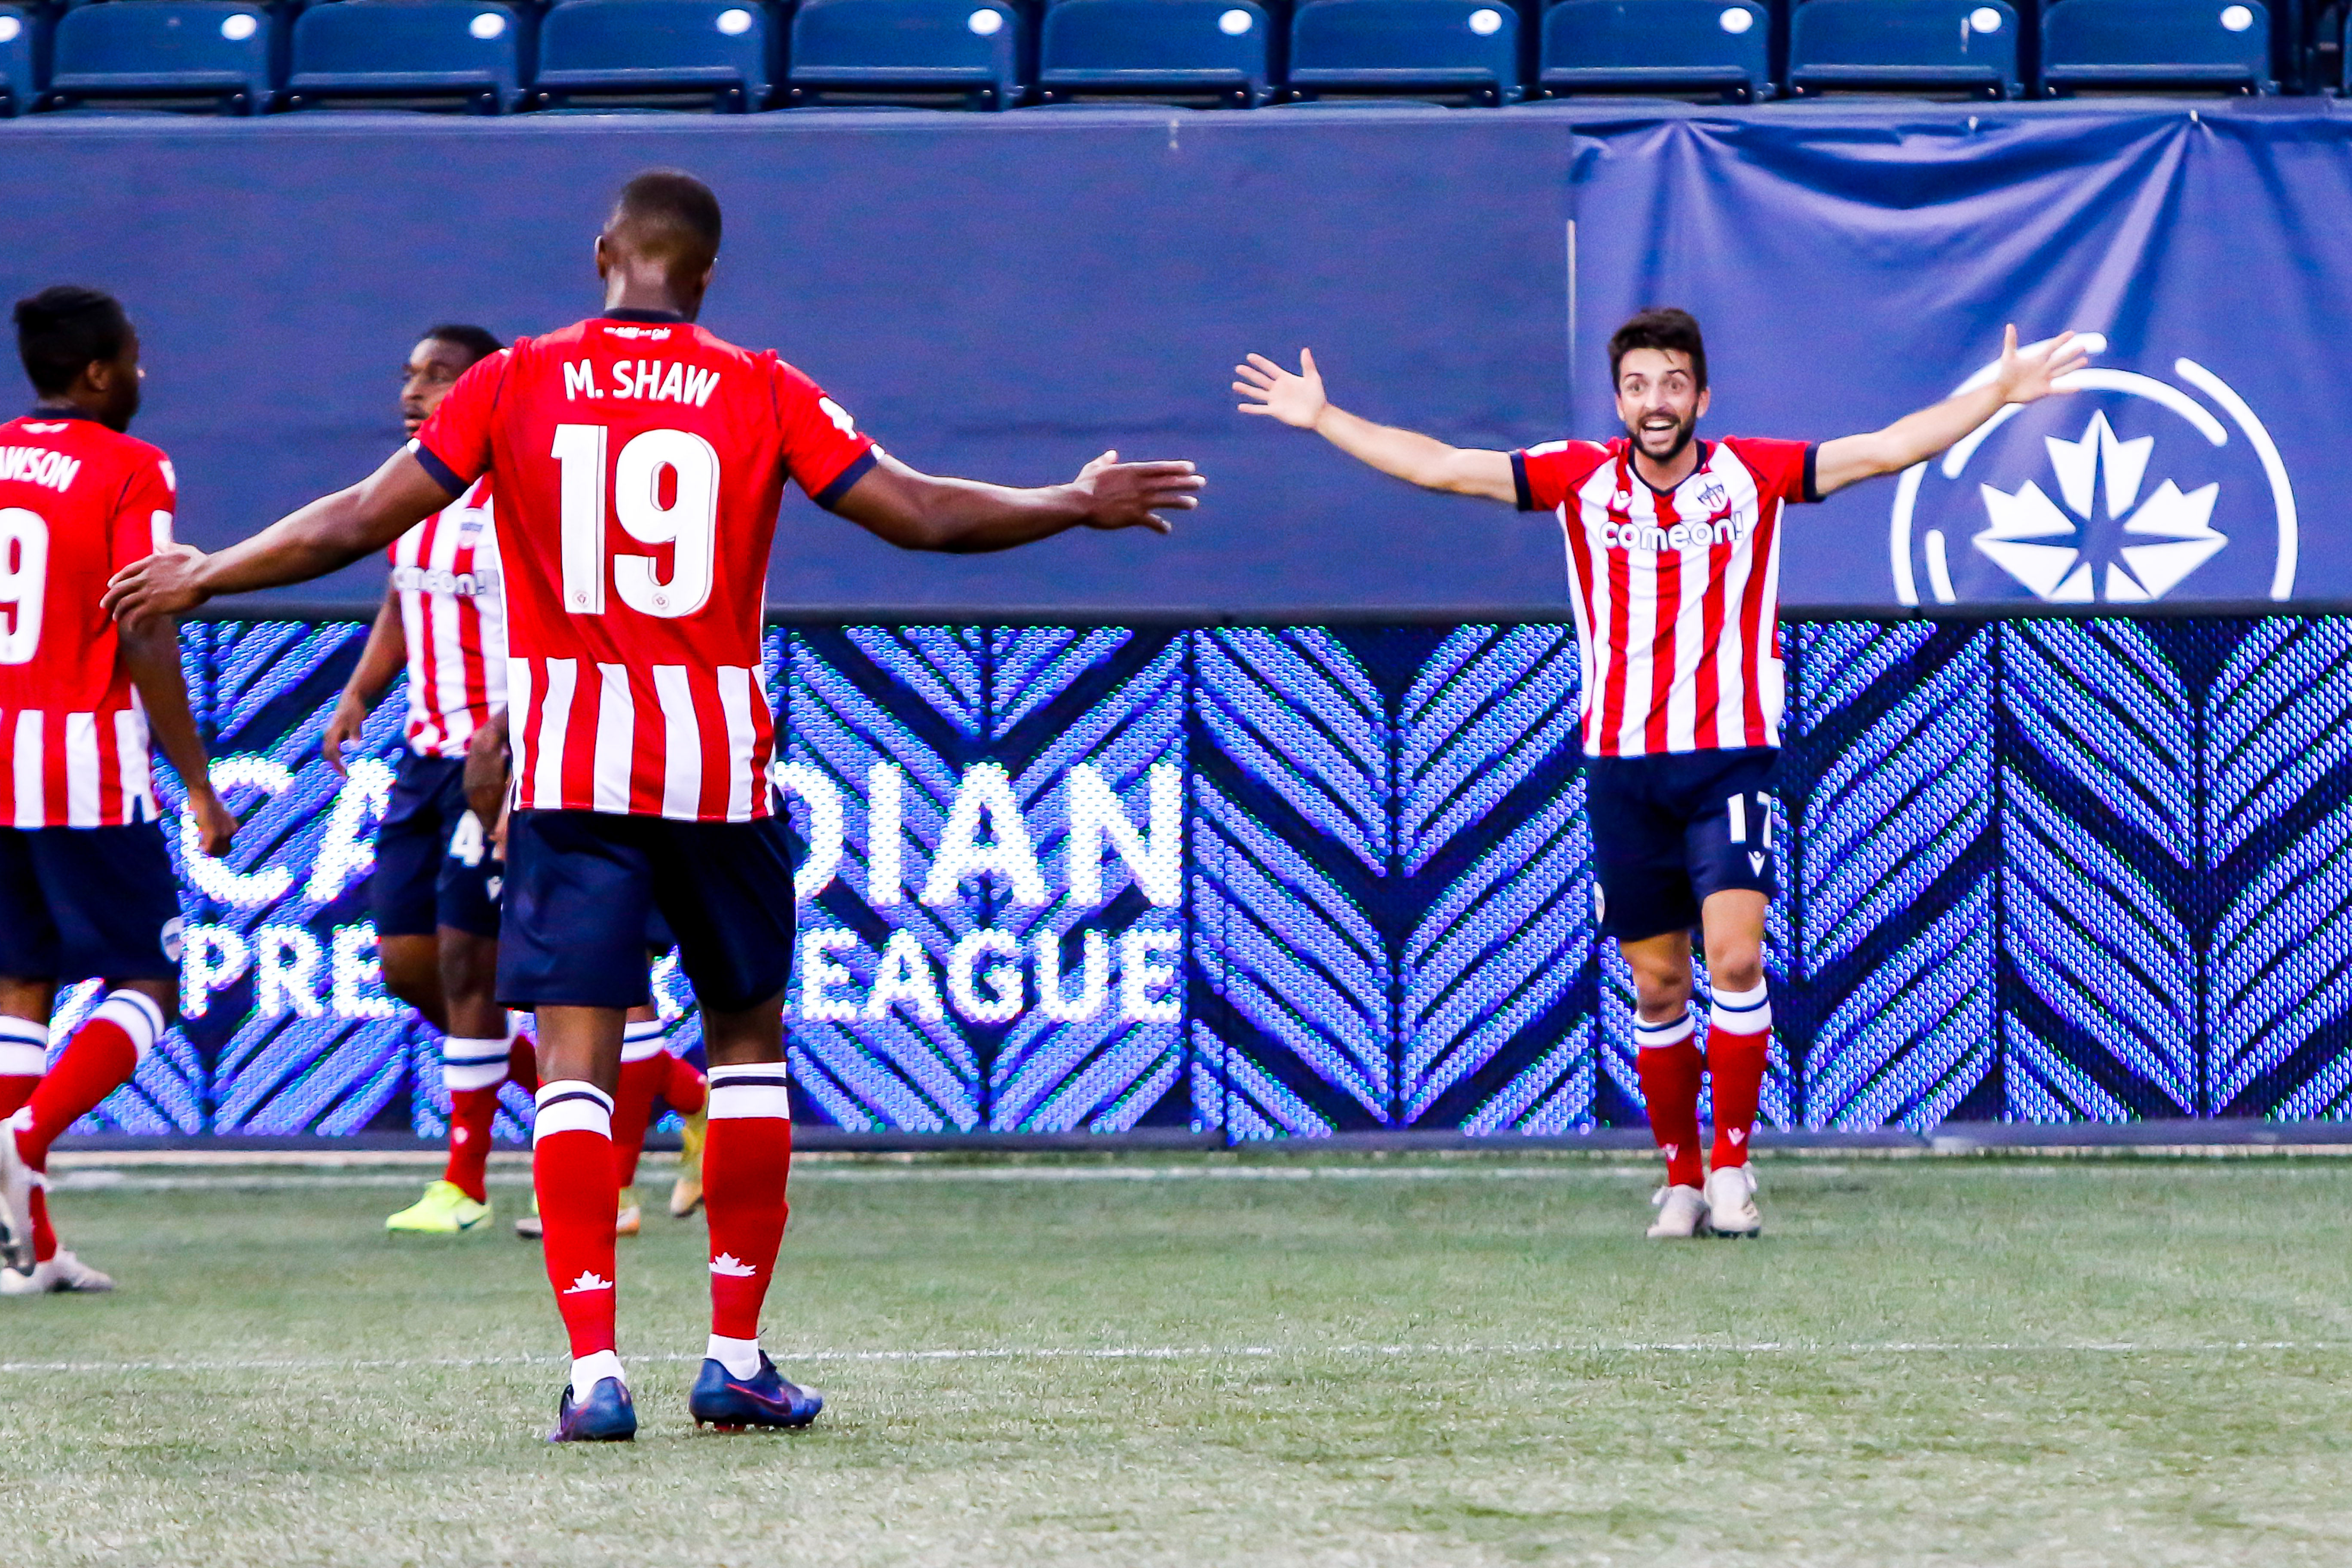 June 30, 2021. Atlético Ottawa vs. Cavalry FC. First-Half. Miguel Acosta celebrates his first half goal with teammate Malcolm Shaw